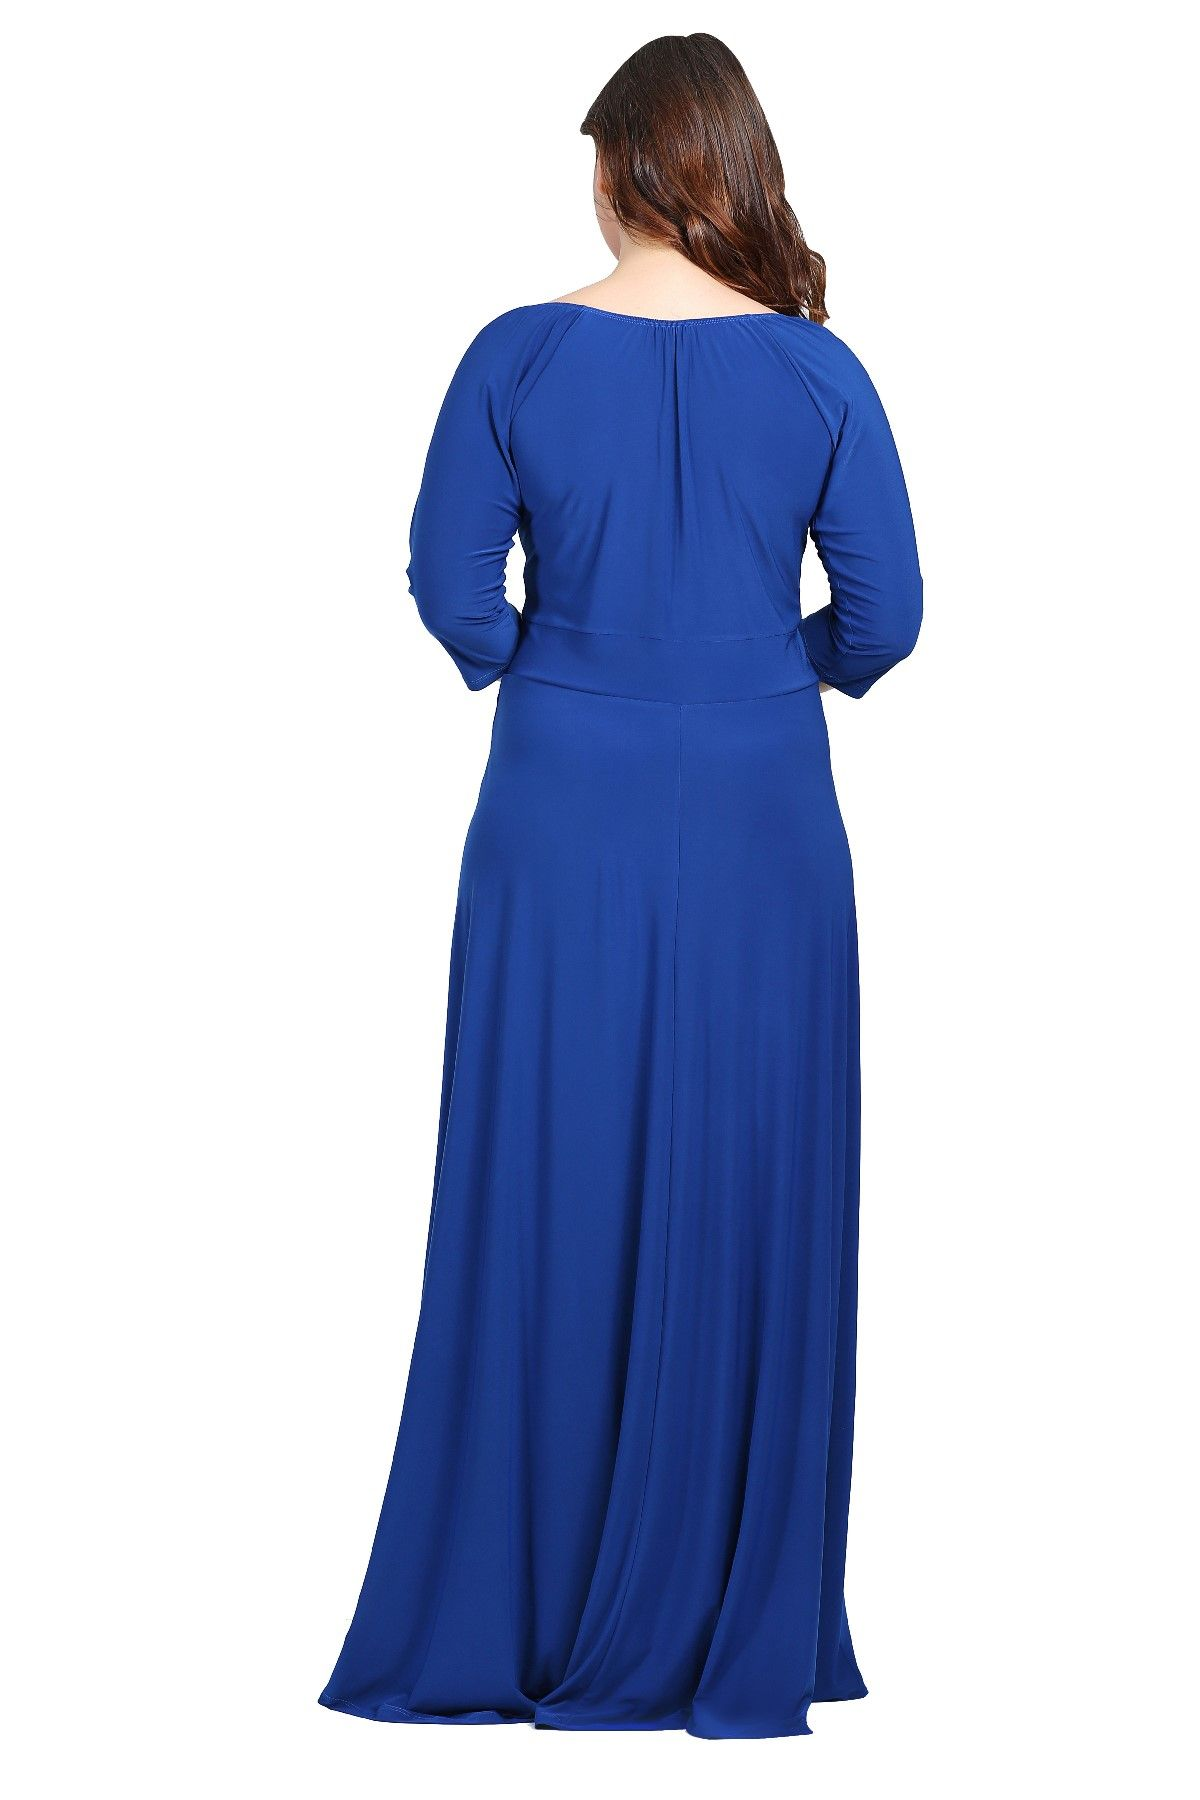 Evening Dress-Bright Blue